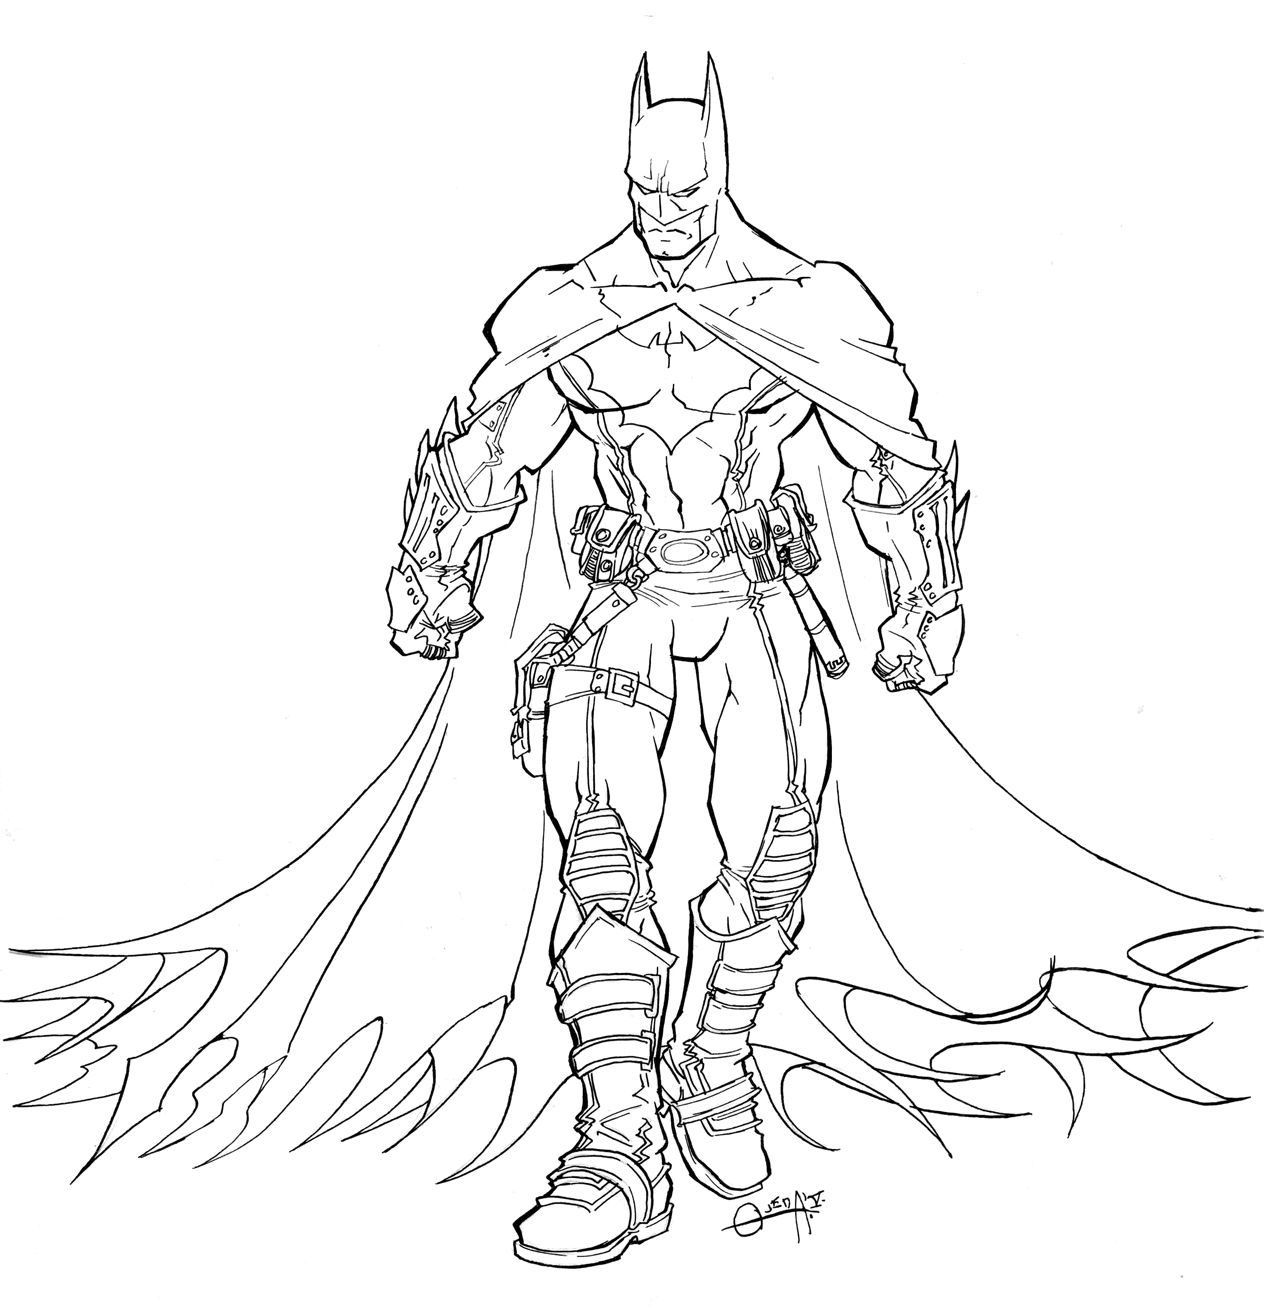 Coloring book outlines - Free Print Coloring Sheets Free Printable Batman Coloring Pages For Kids